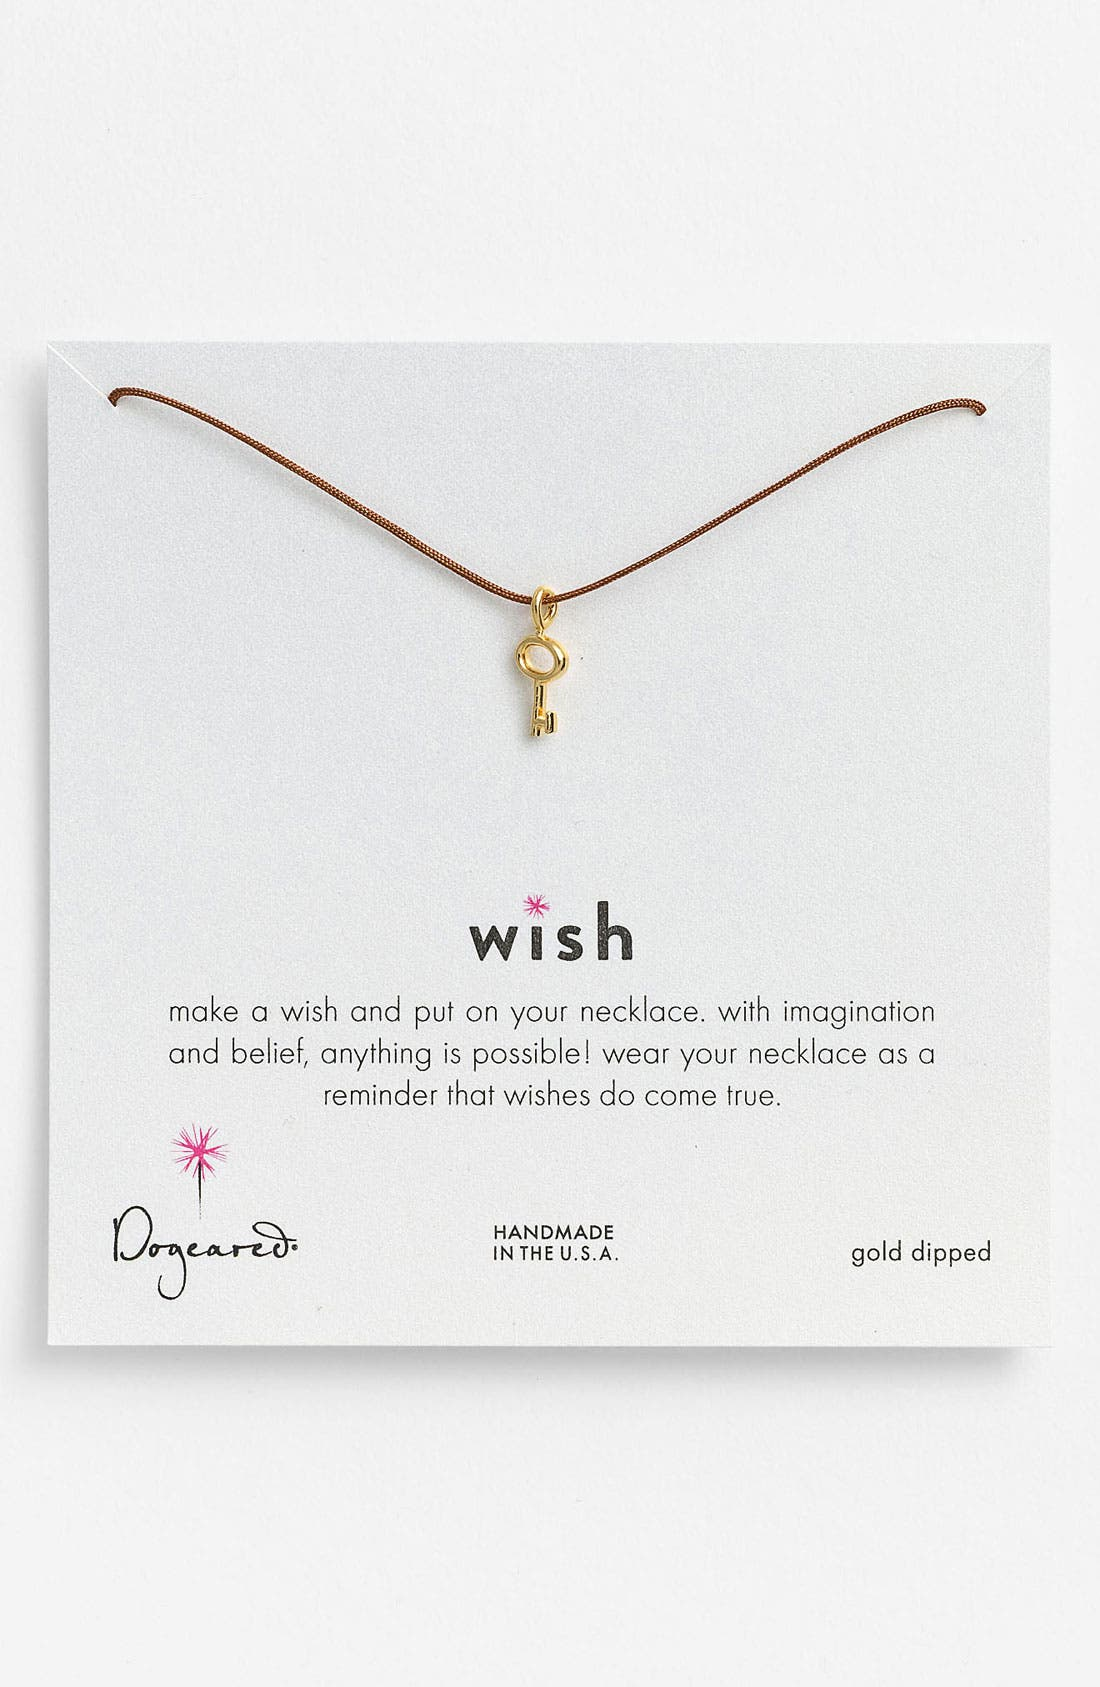 Alternate Image 1 Selected - Dogeared 'Wish' Key Charm Necklace